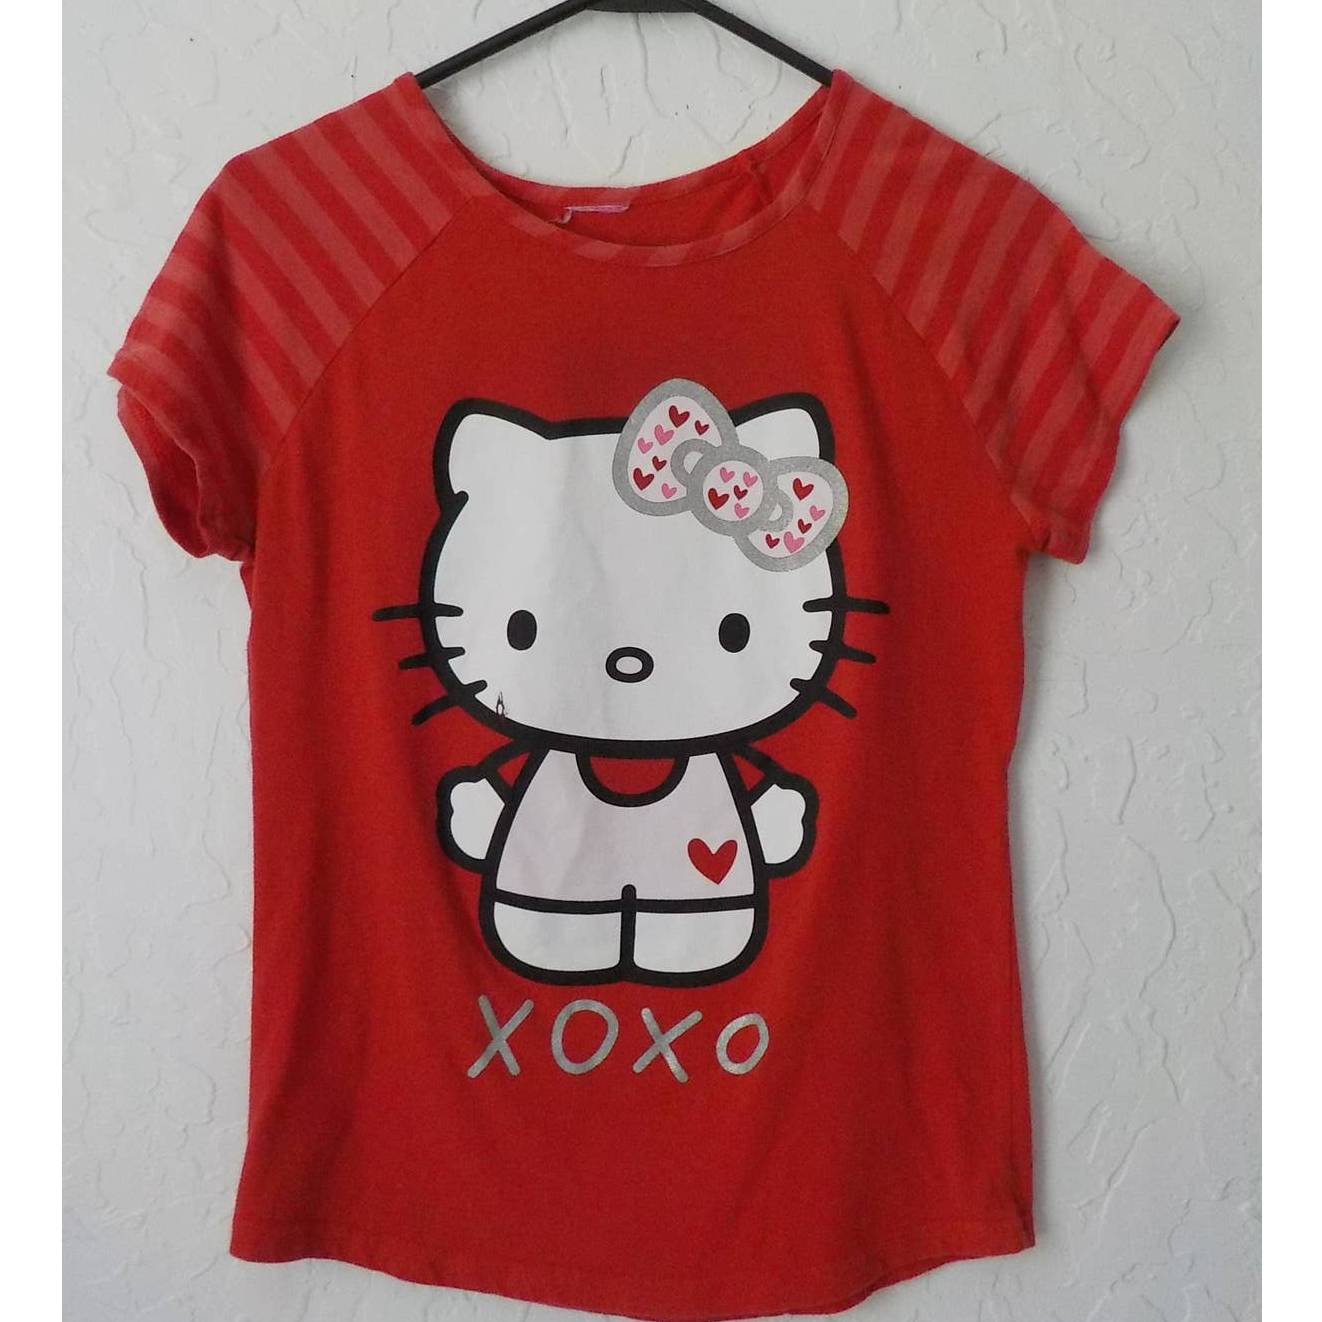 Hello Kitty Tshirt Red Graphic Tee Small